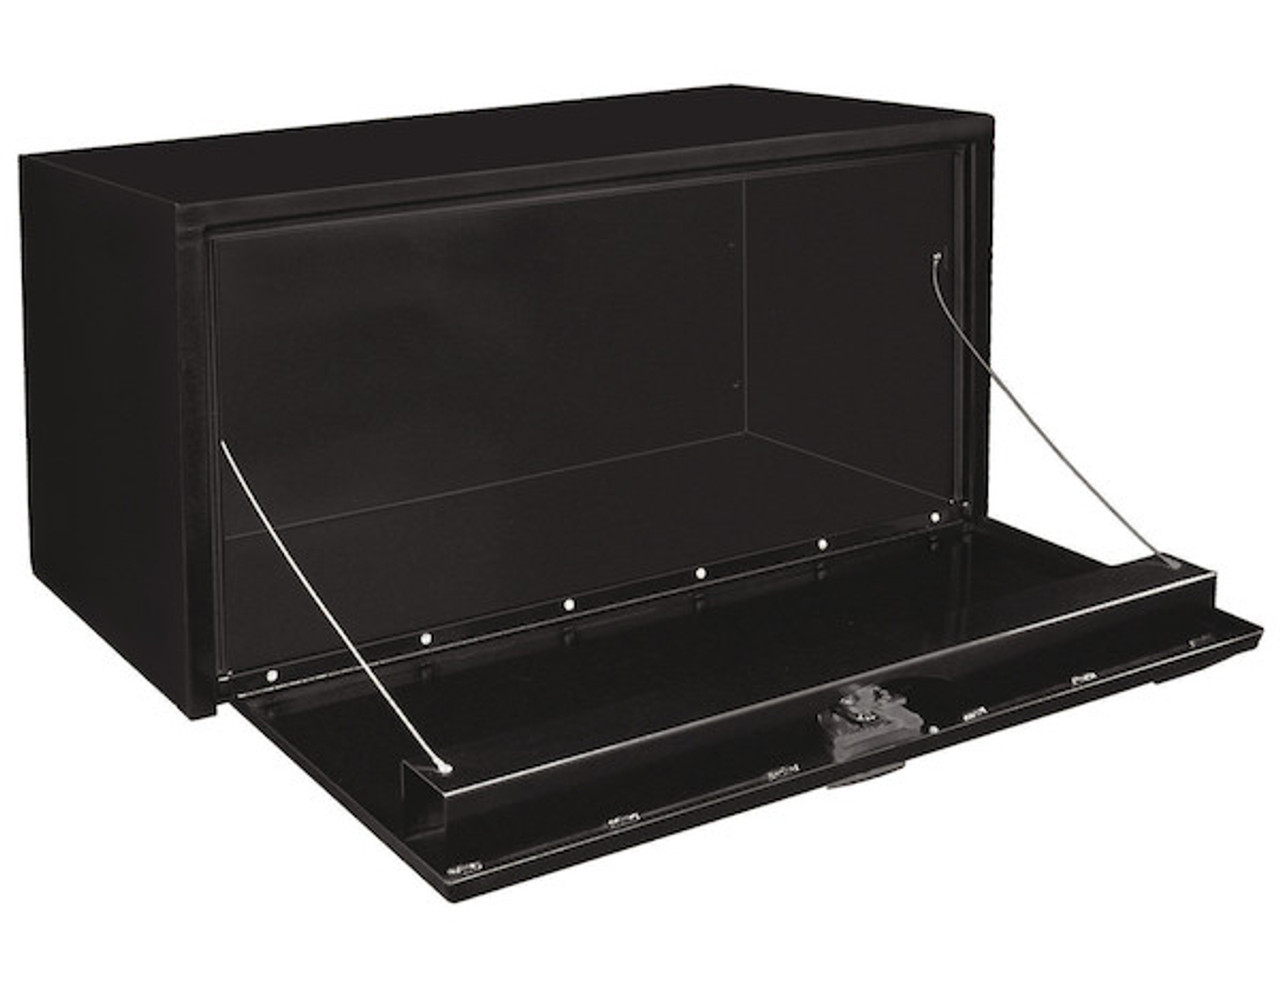 "1704305 BUYERS PRODUCTS BLACK STEEL UNDERBODY TRUCK TOOLBOX WITH T-LATCH 24""HX24""DX36""W"